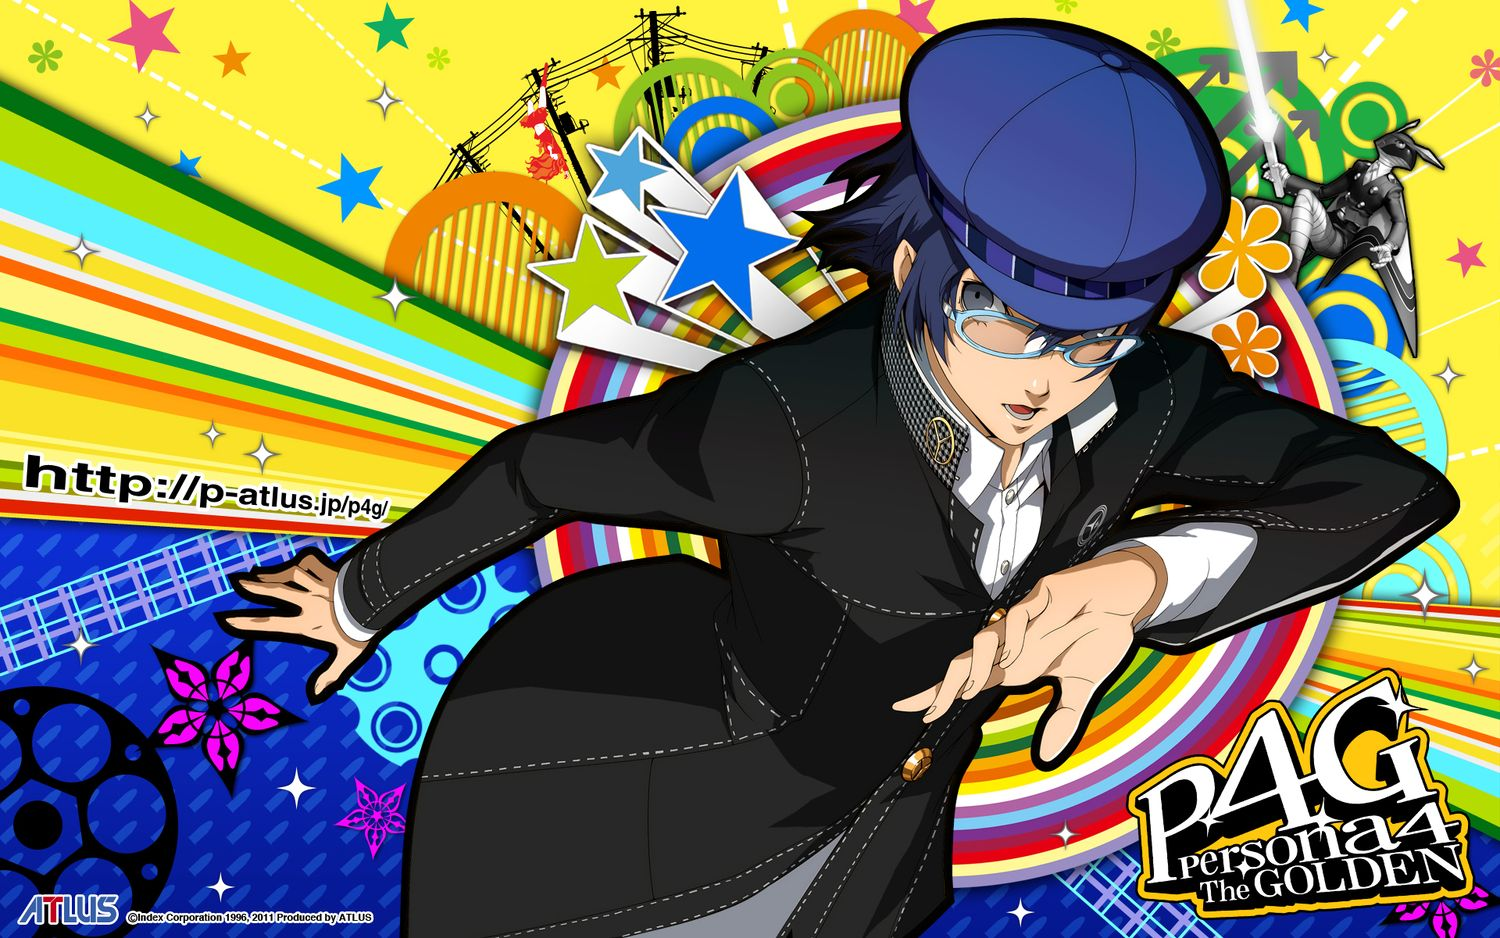 Persona The Golden Wallpapers Top Free Persona The Golden